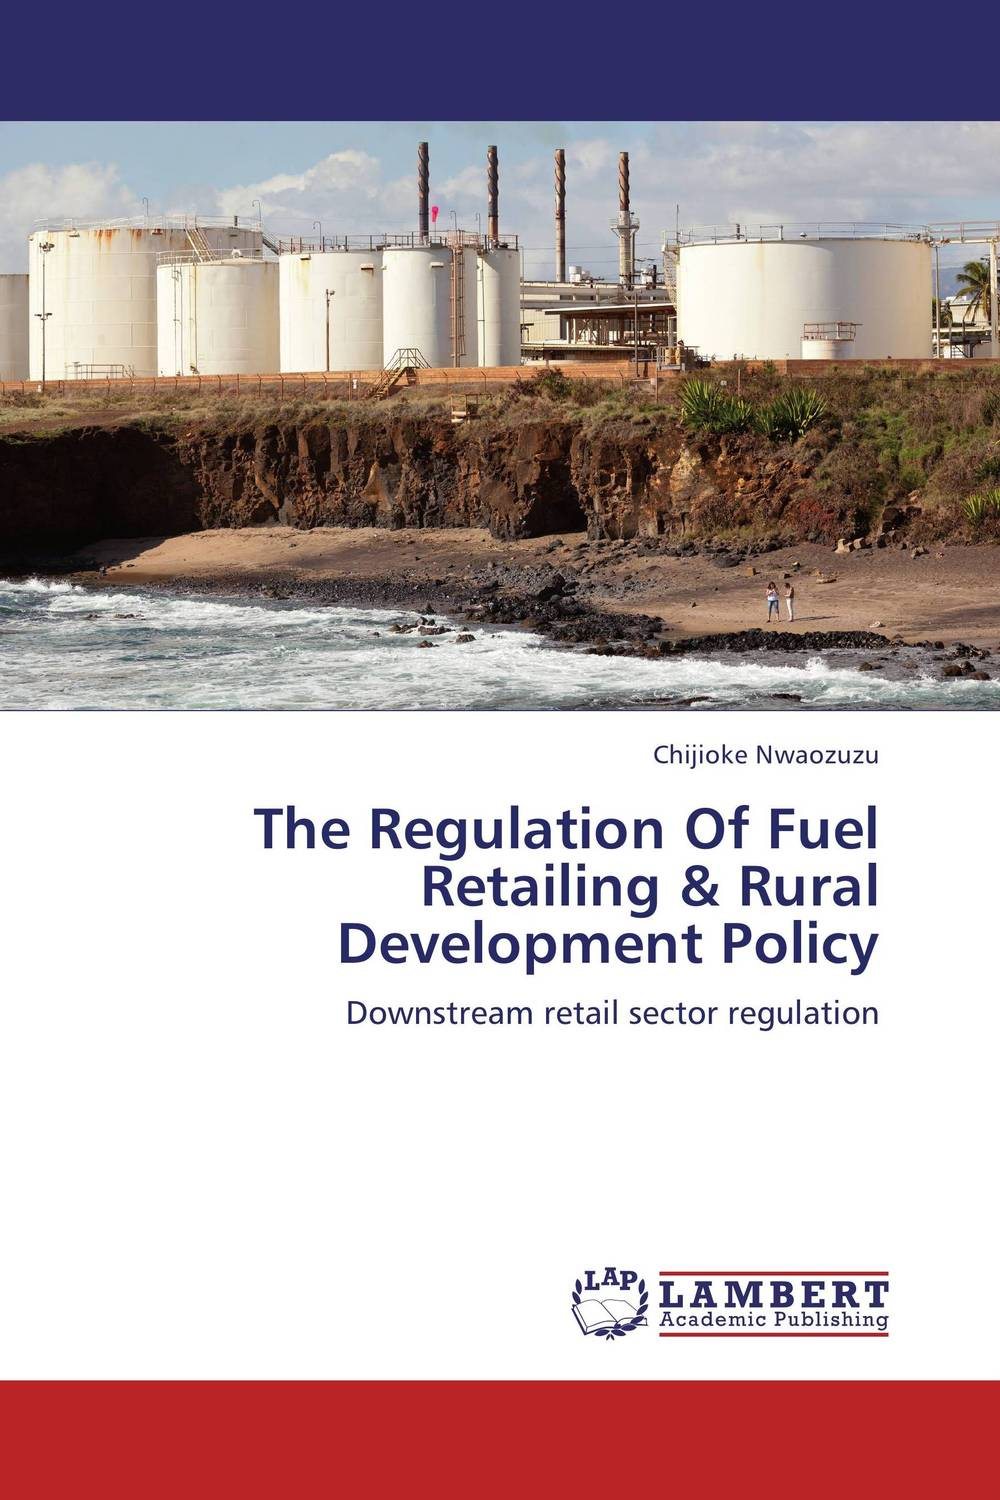 The Regulation Of Fuel Retailing & Rural Development Policy locations